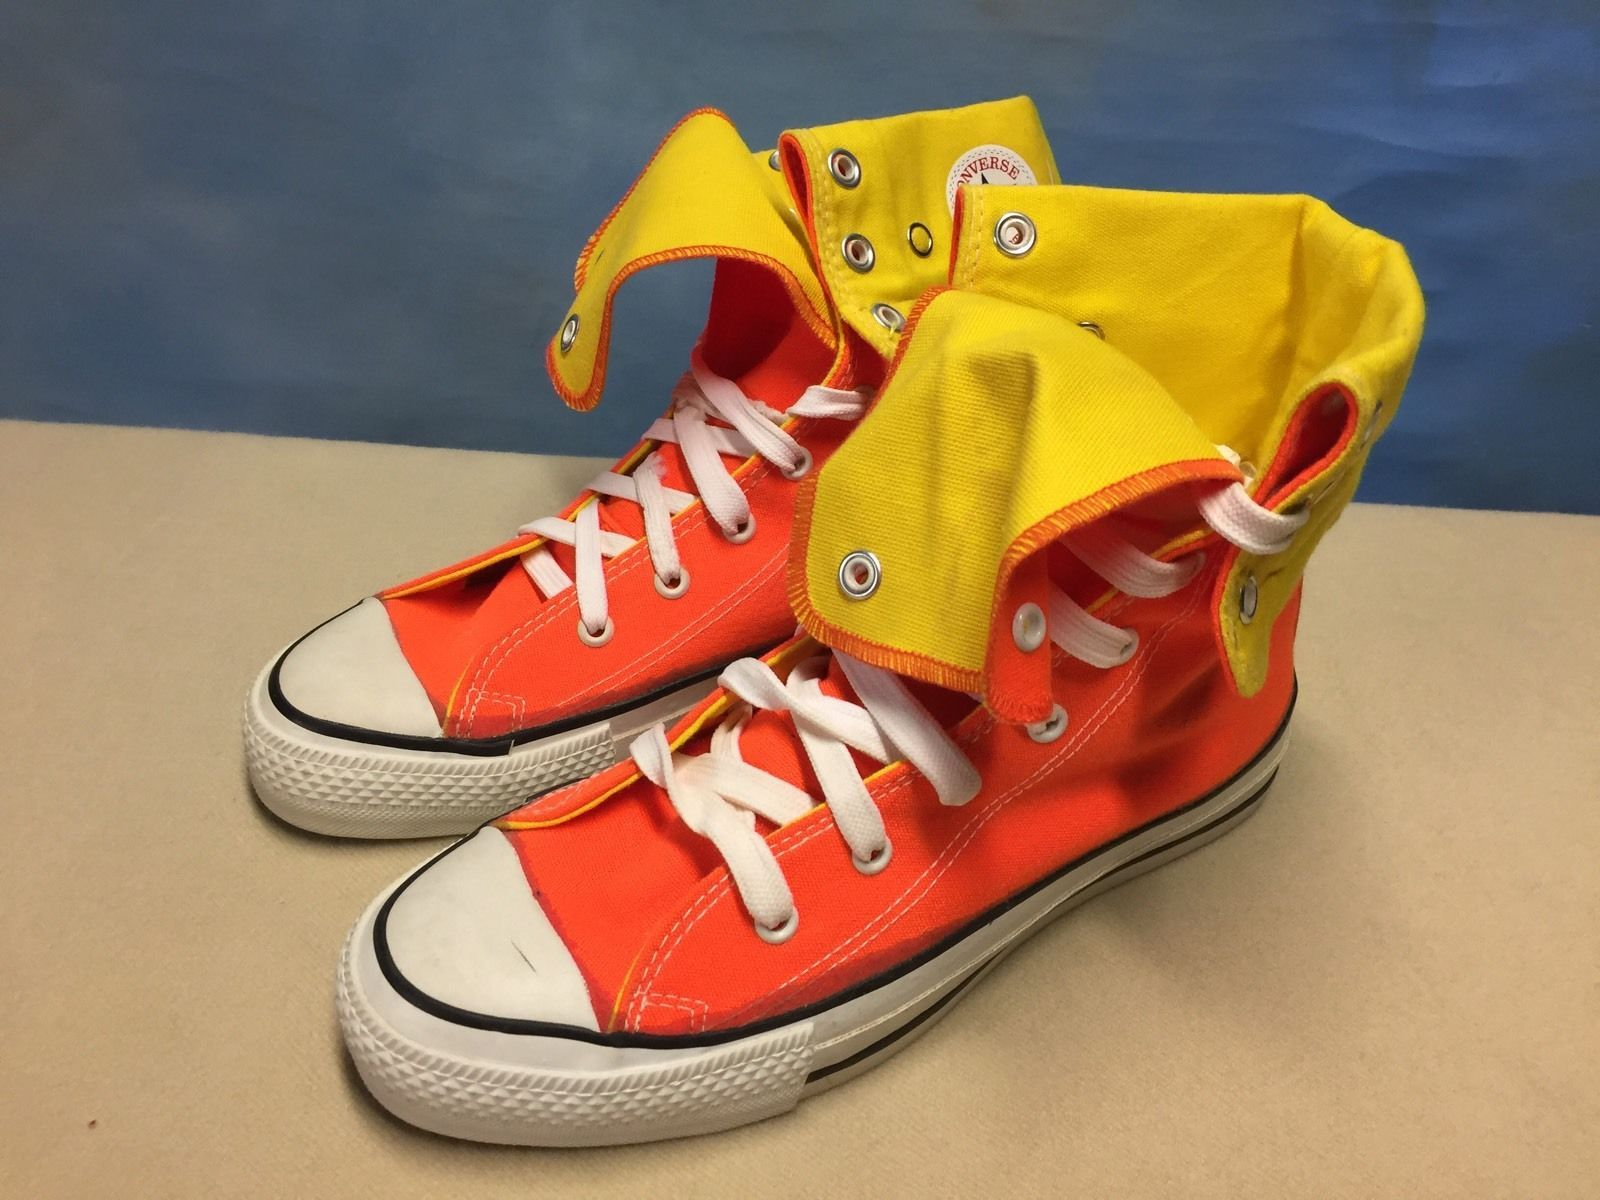 1dbc5566ad65d Vintage 80s 90s CONVERSE Orange Yellow Canvas High Top Sneakers Sz 6.5 USA  MADE! in Clothing